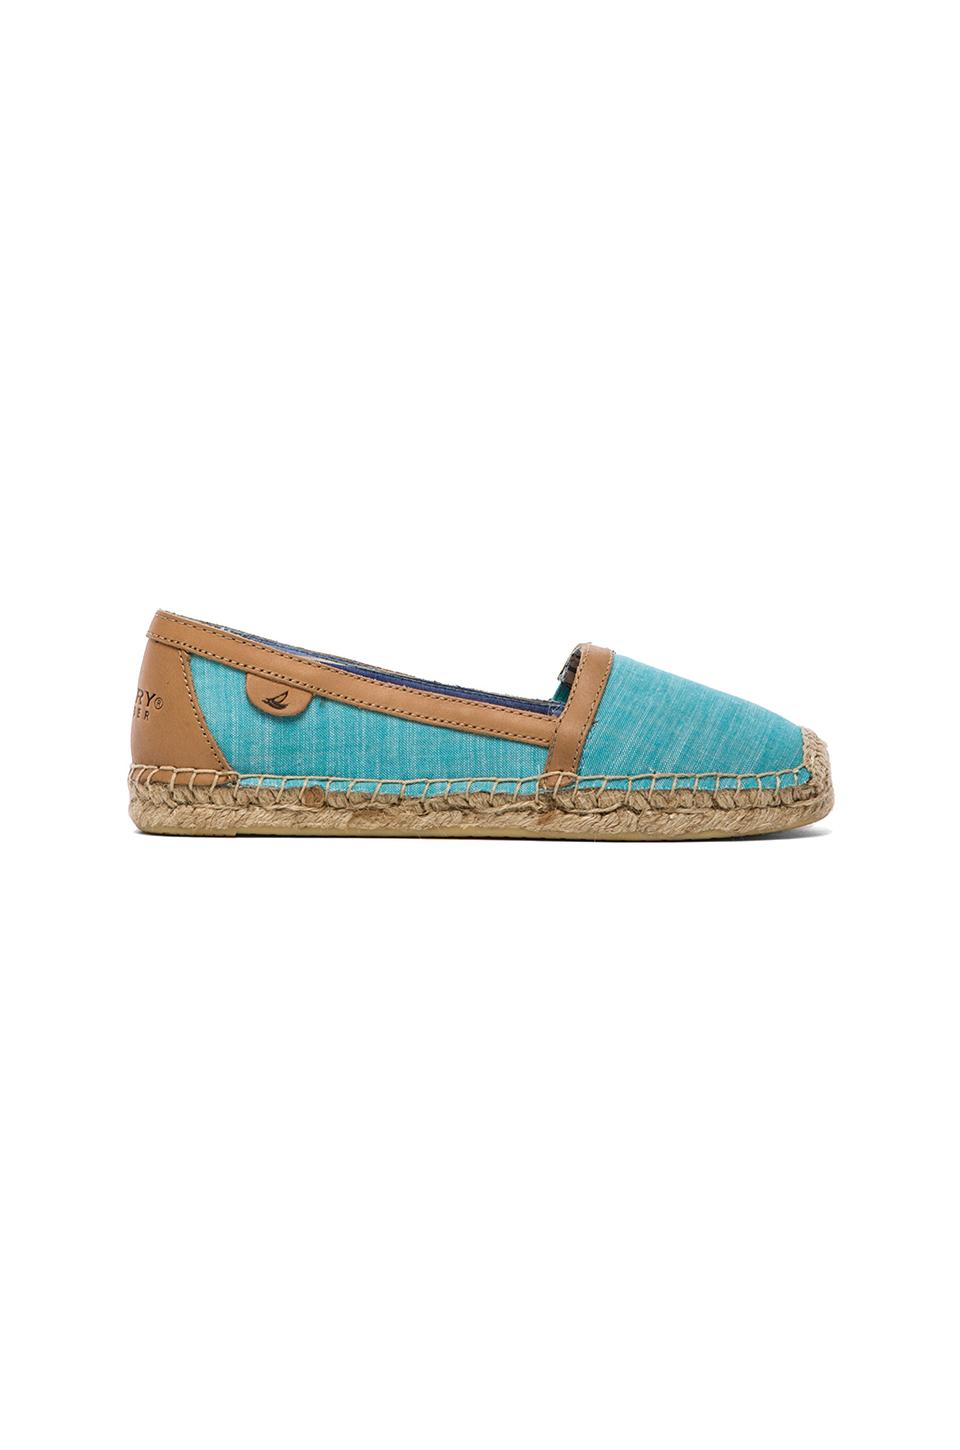 Sperry Top-Sider Danica in Blue Chambray